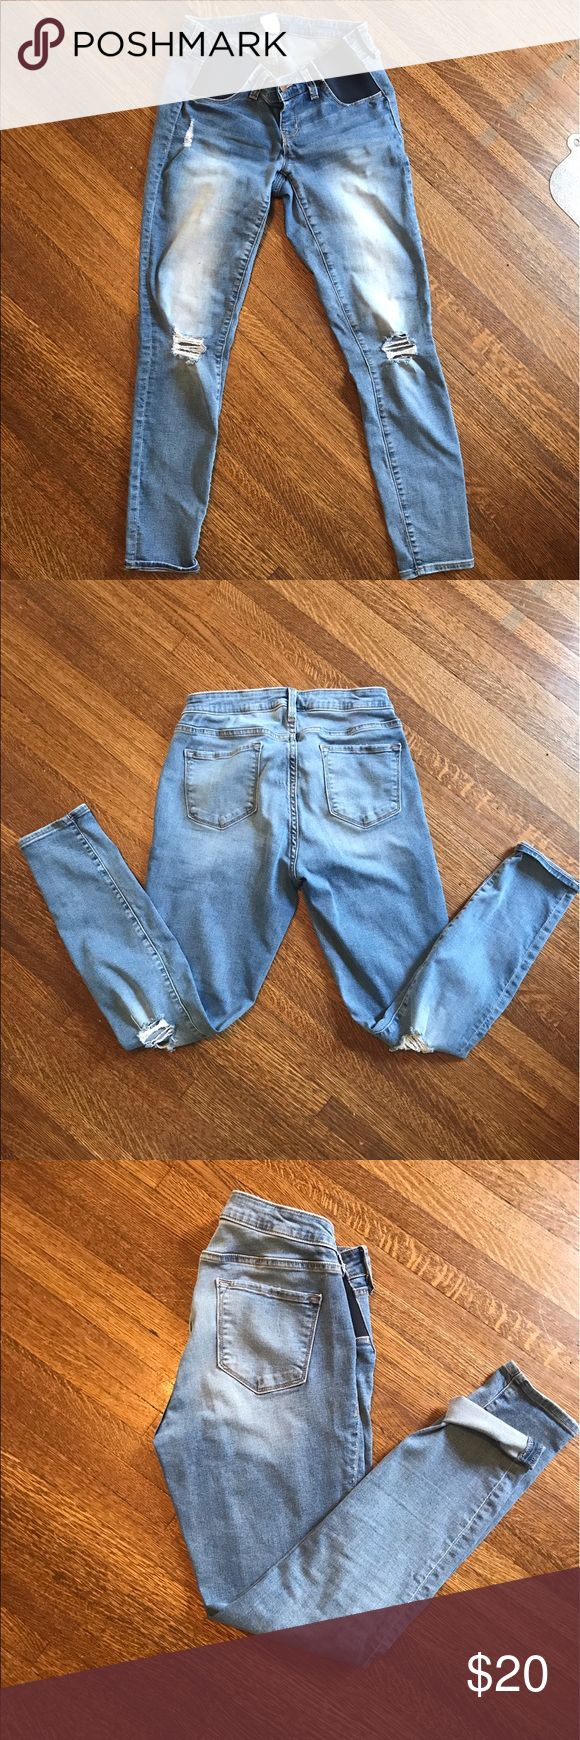 Old Navy Distressed Maternity Jeans Maternity Rockstar jeans with side panel. Old Navy Jeans Skinny